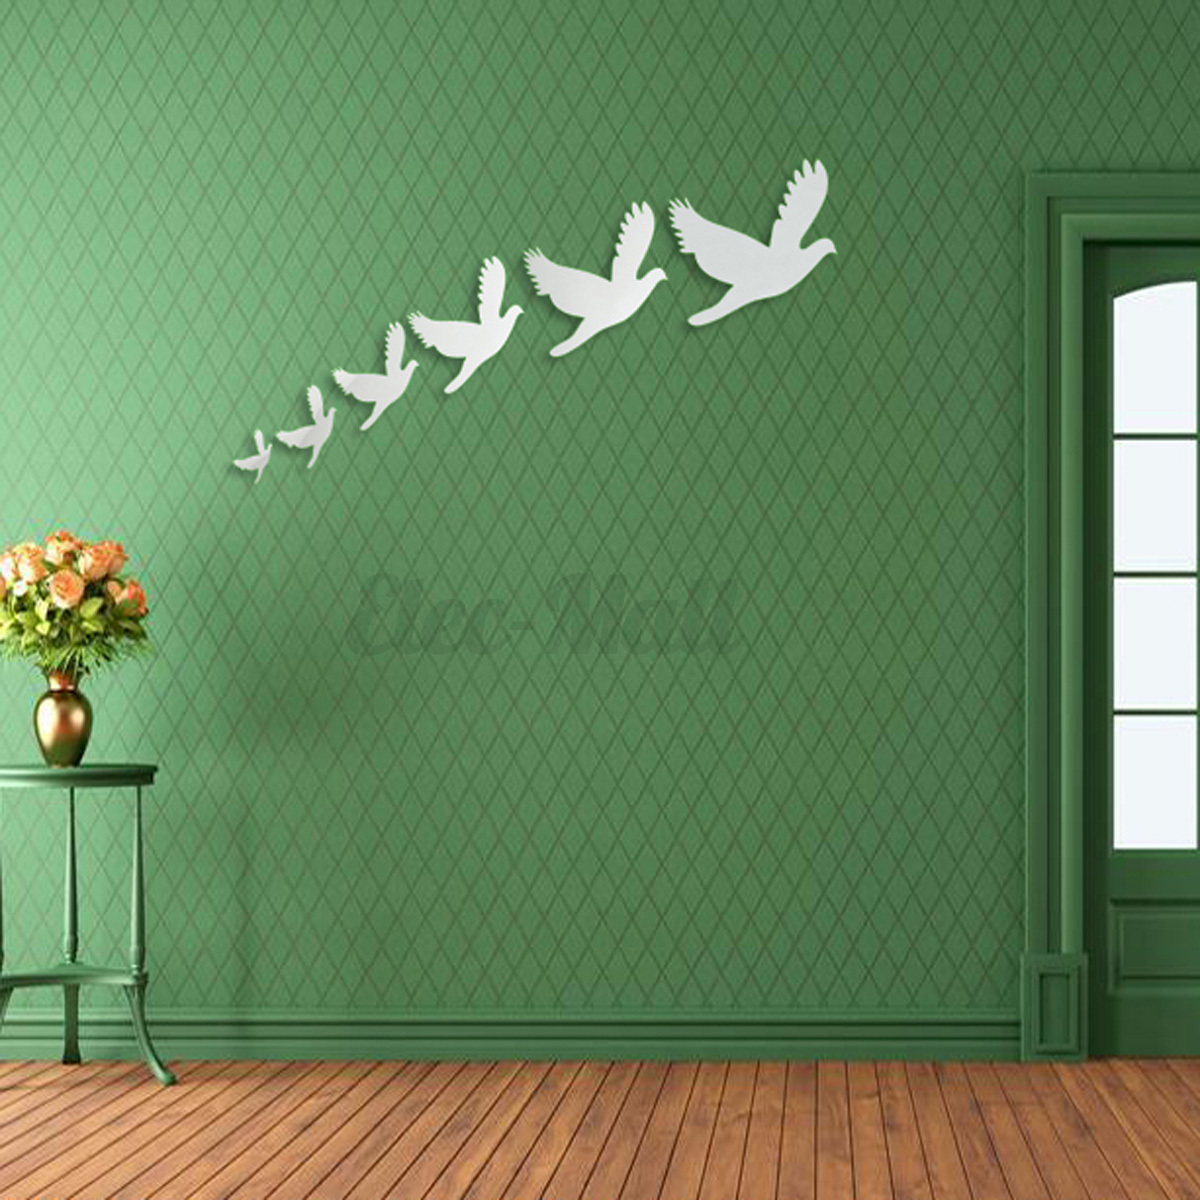 Diy Home Decoration Wall Decals : Removable diy d mirror surface wall stickers mural art